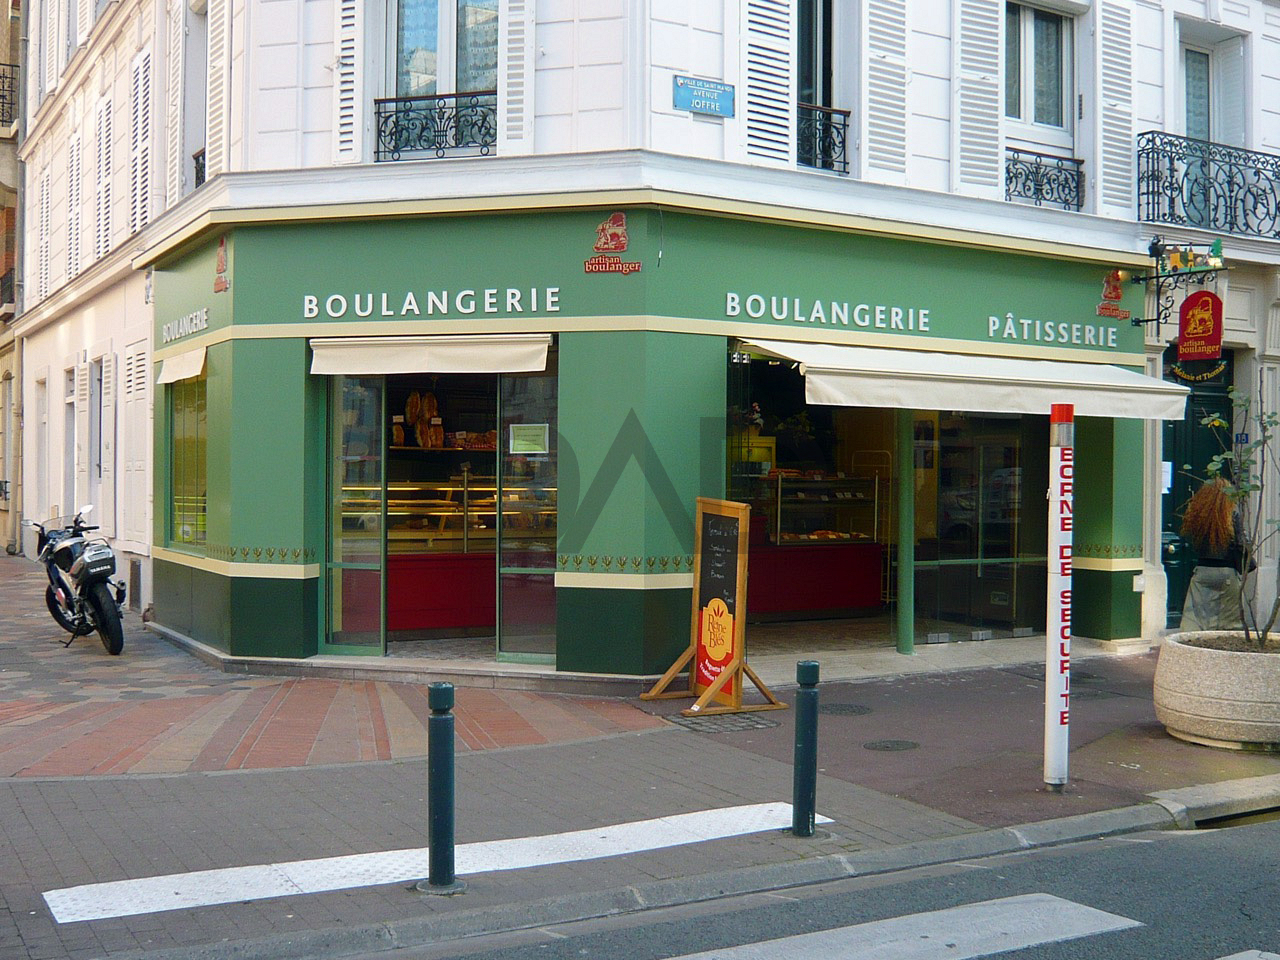 Boulangerie patisserie BOURGEOIS